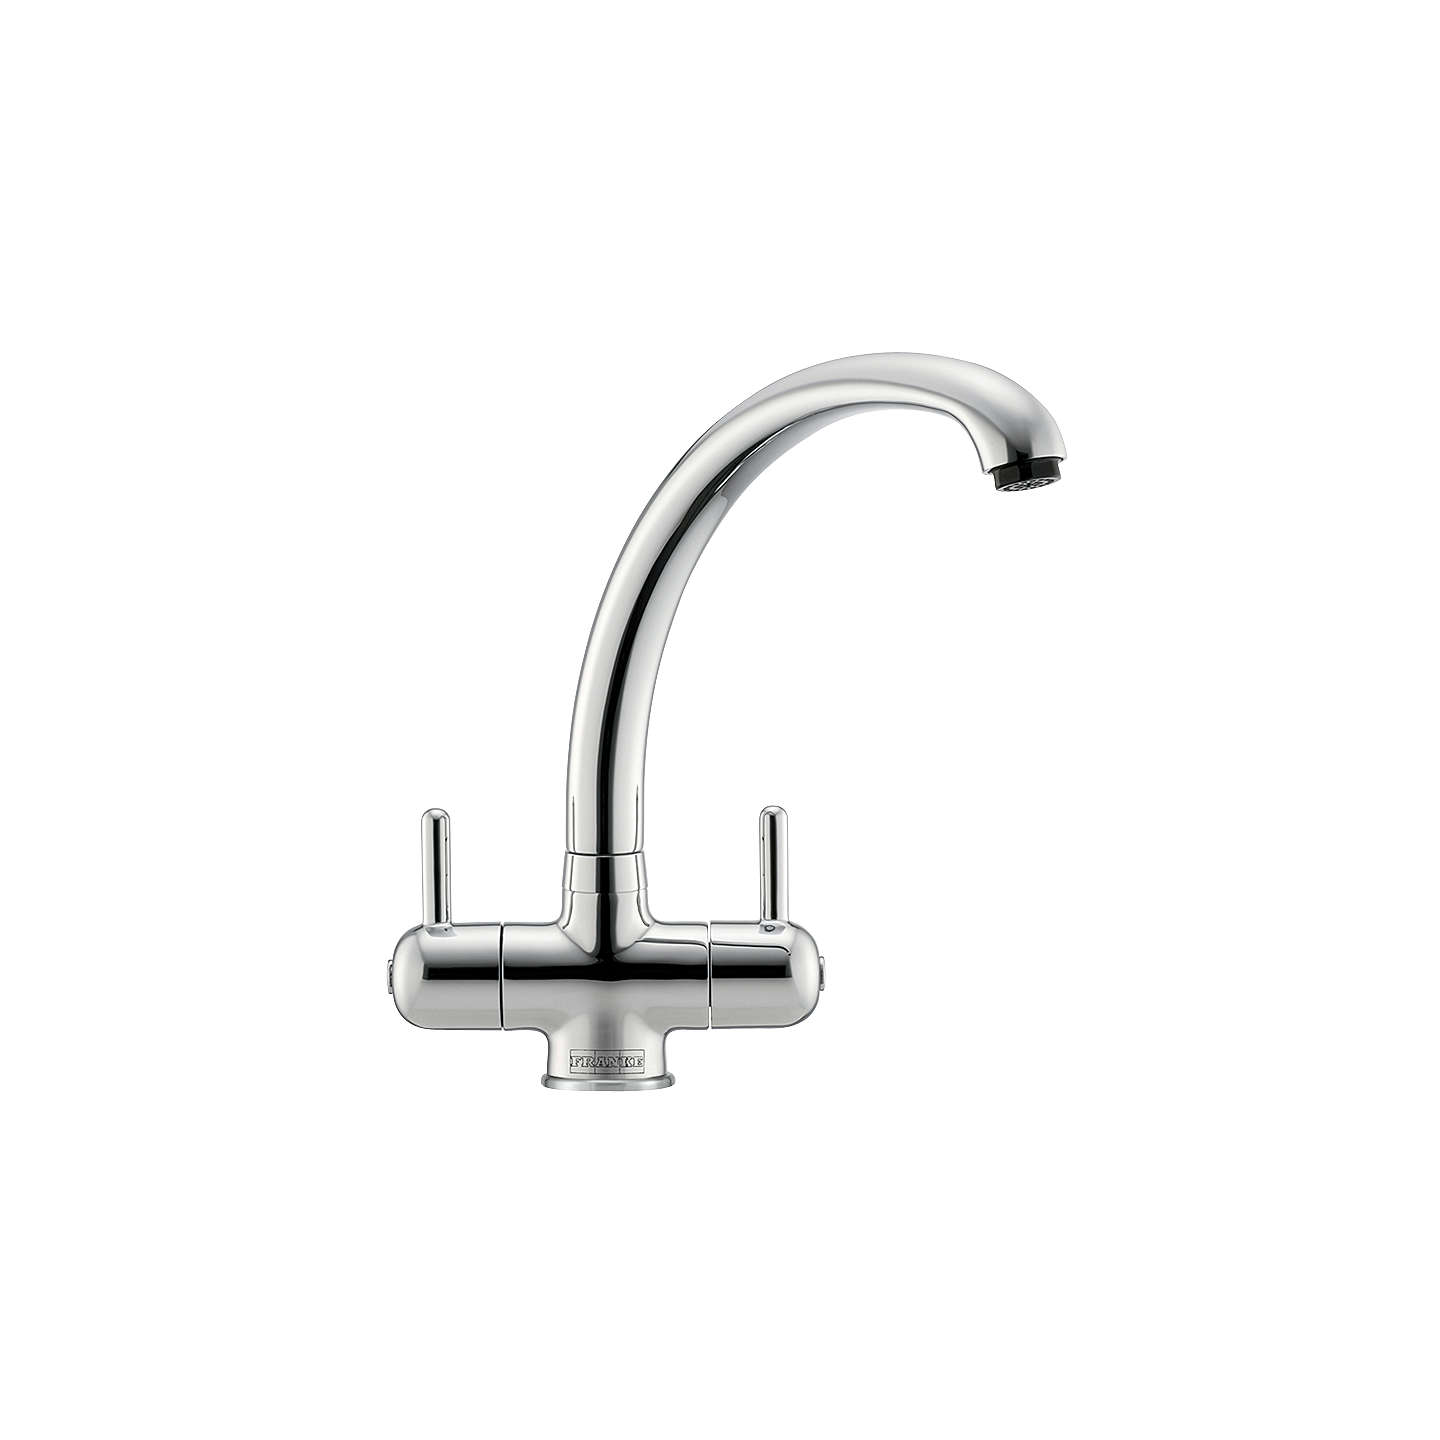 Franke Zurich 2 Lever Mixer Kitchen Tap at John Lewis